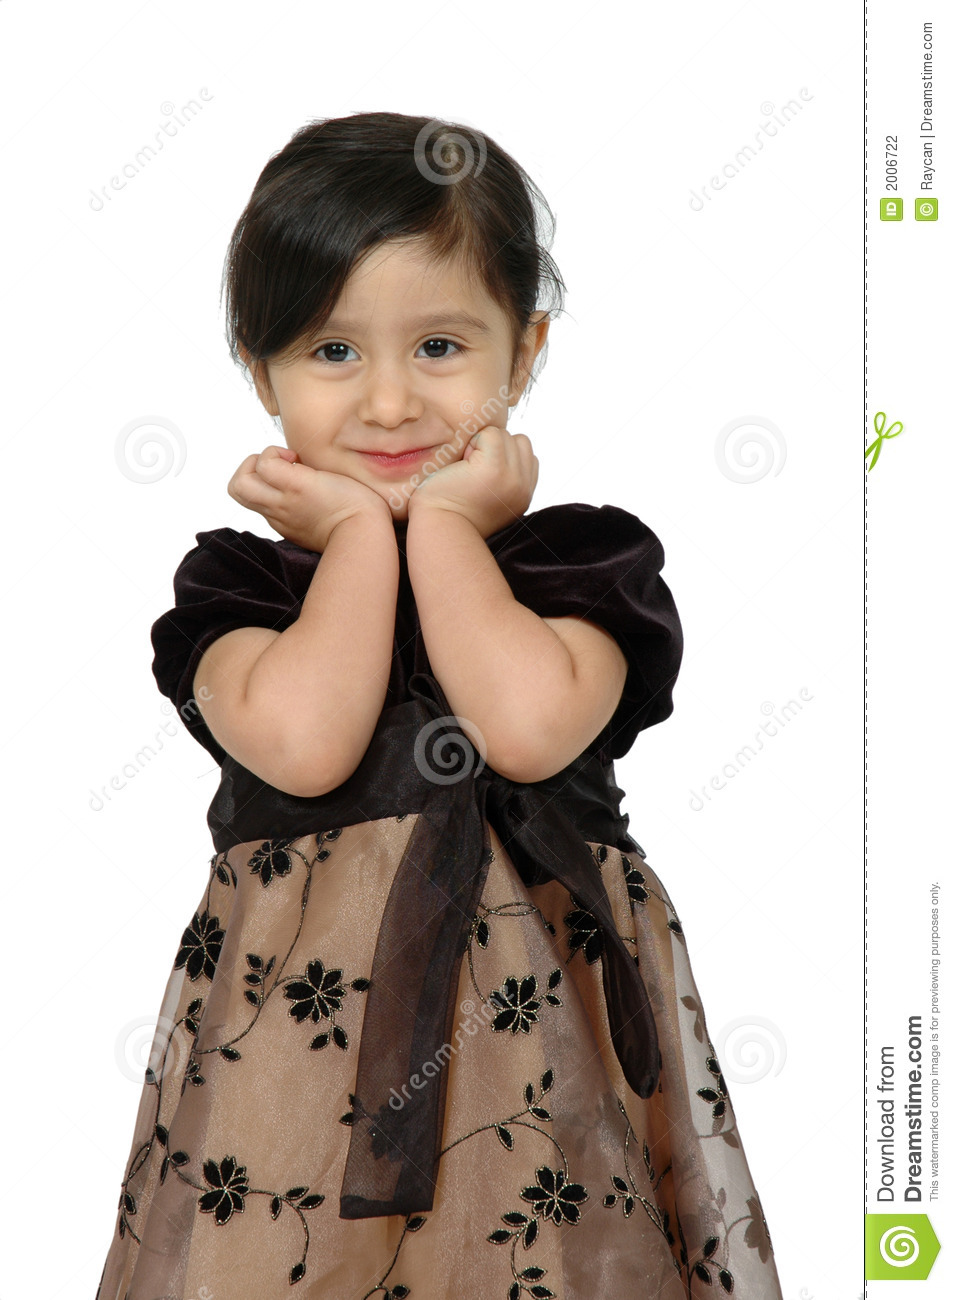 Cute Stock Photography